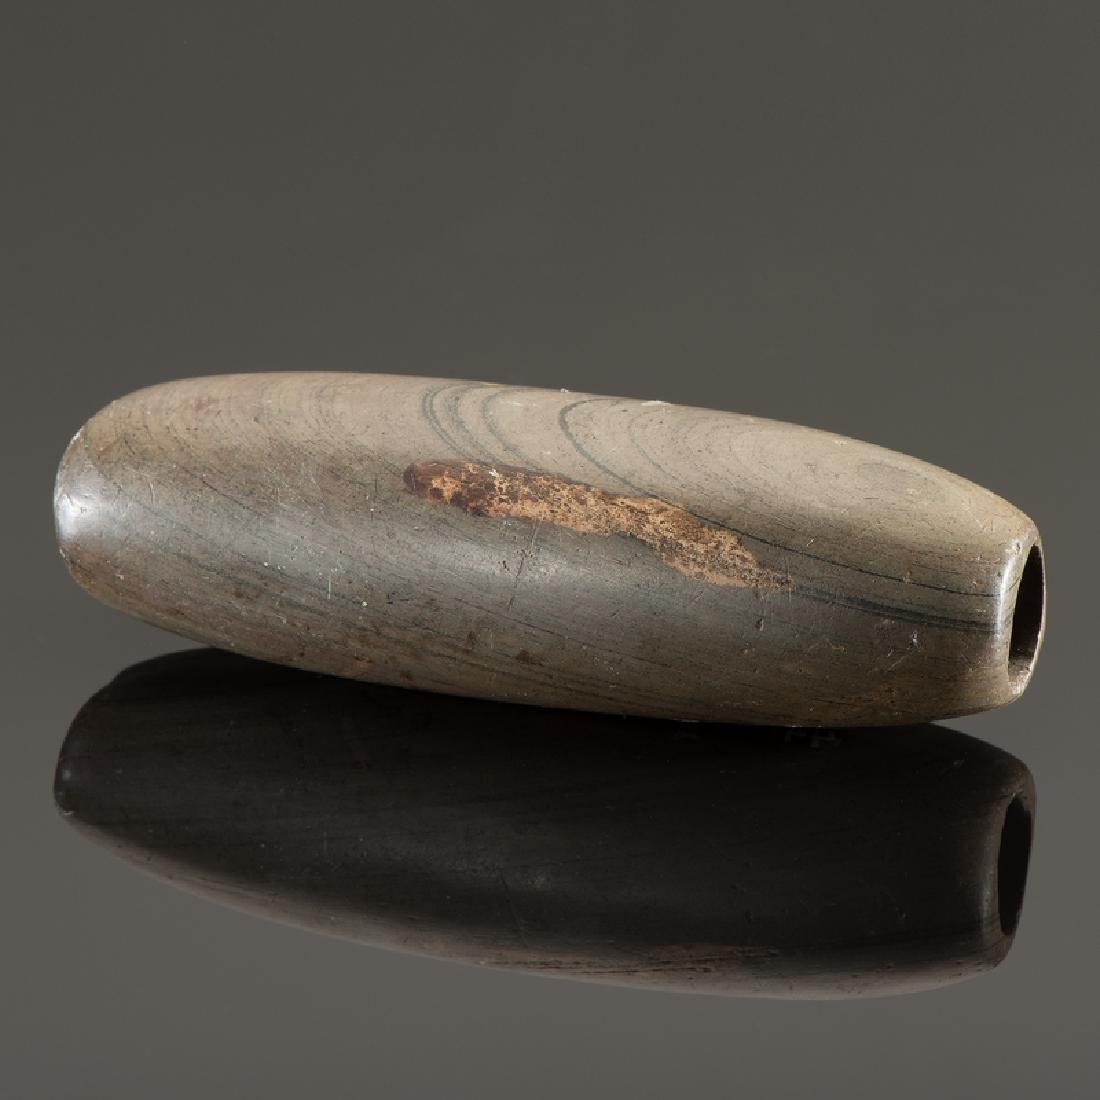 A Slate Tube Bannerstone, From the Collection of Jan